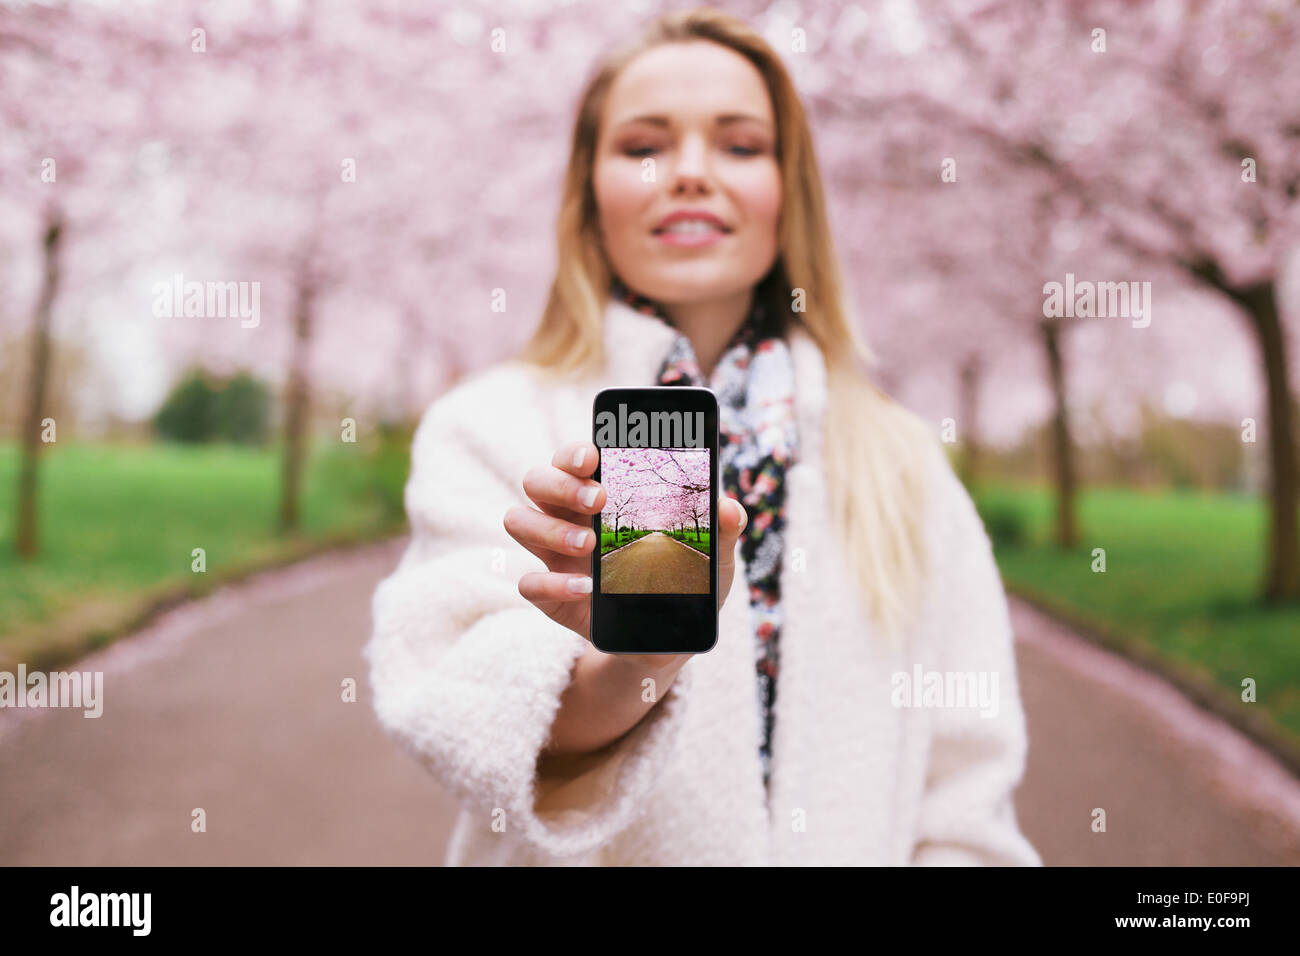 Young woman showing a photograph on her smart phone at you. Female at spring park displaying images on her mobile phone. - Stock Image